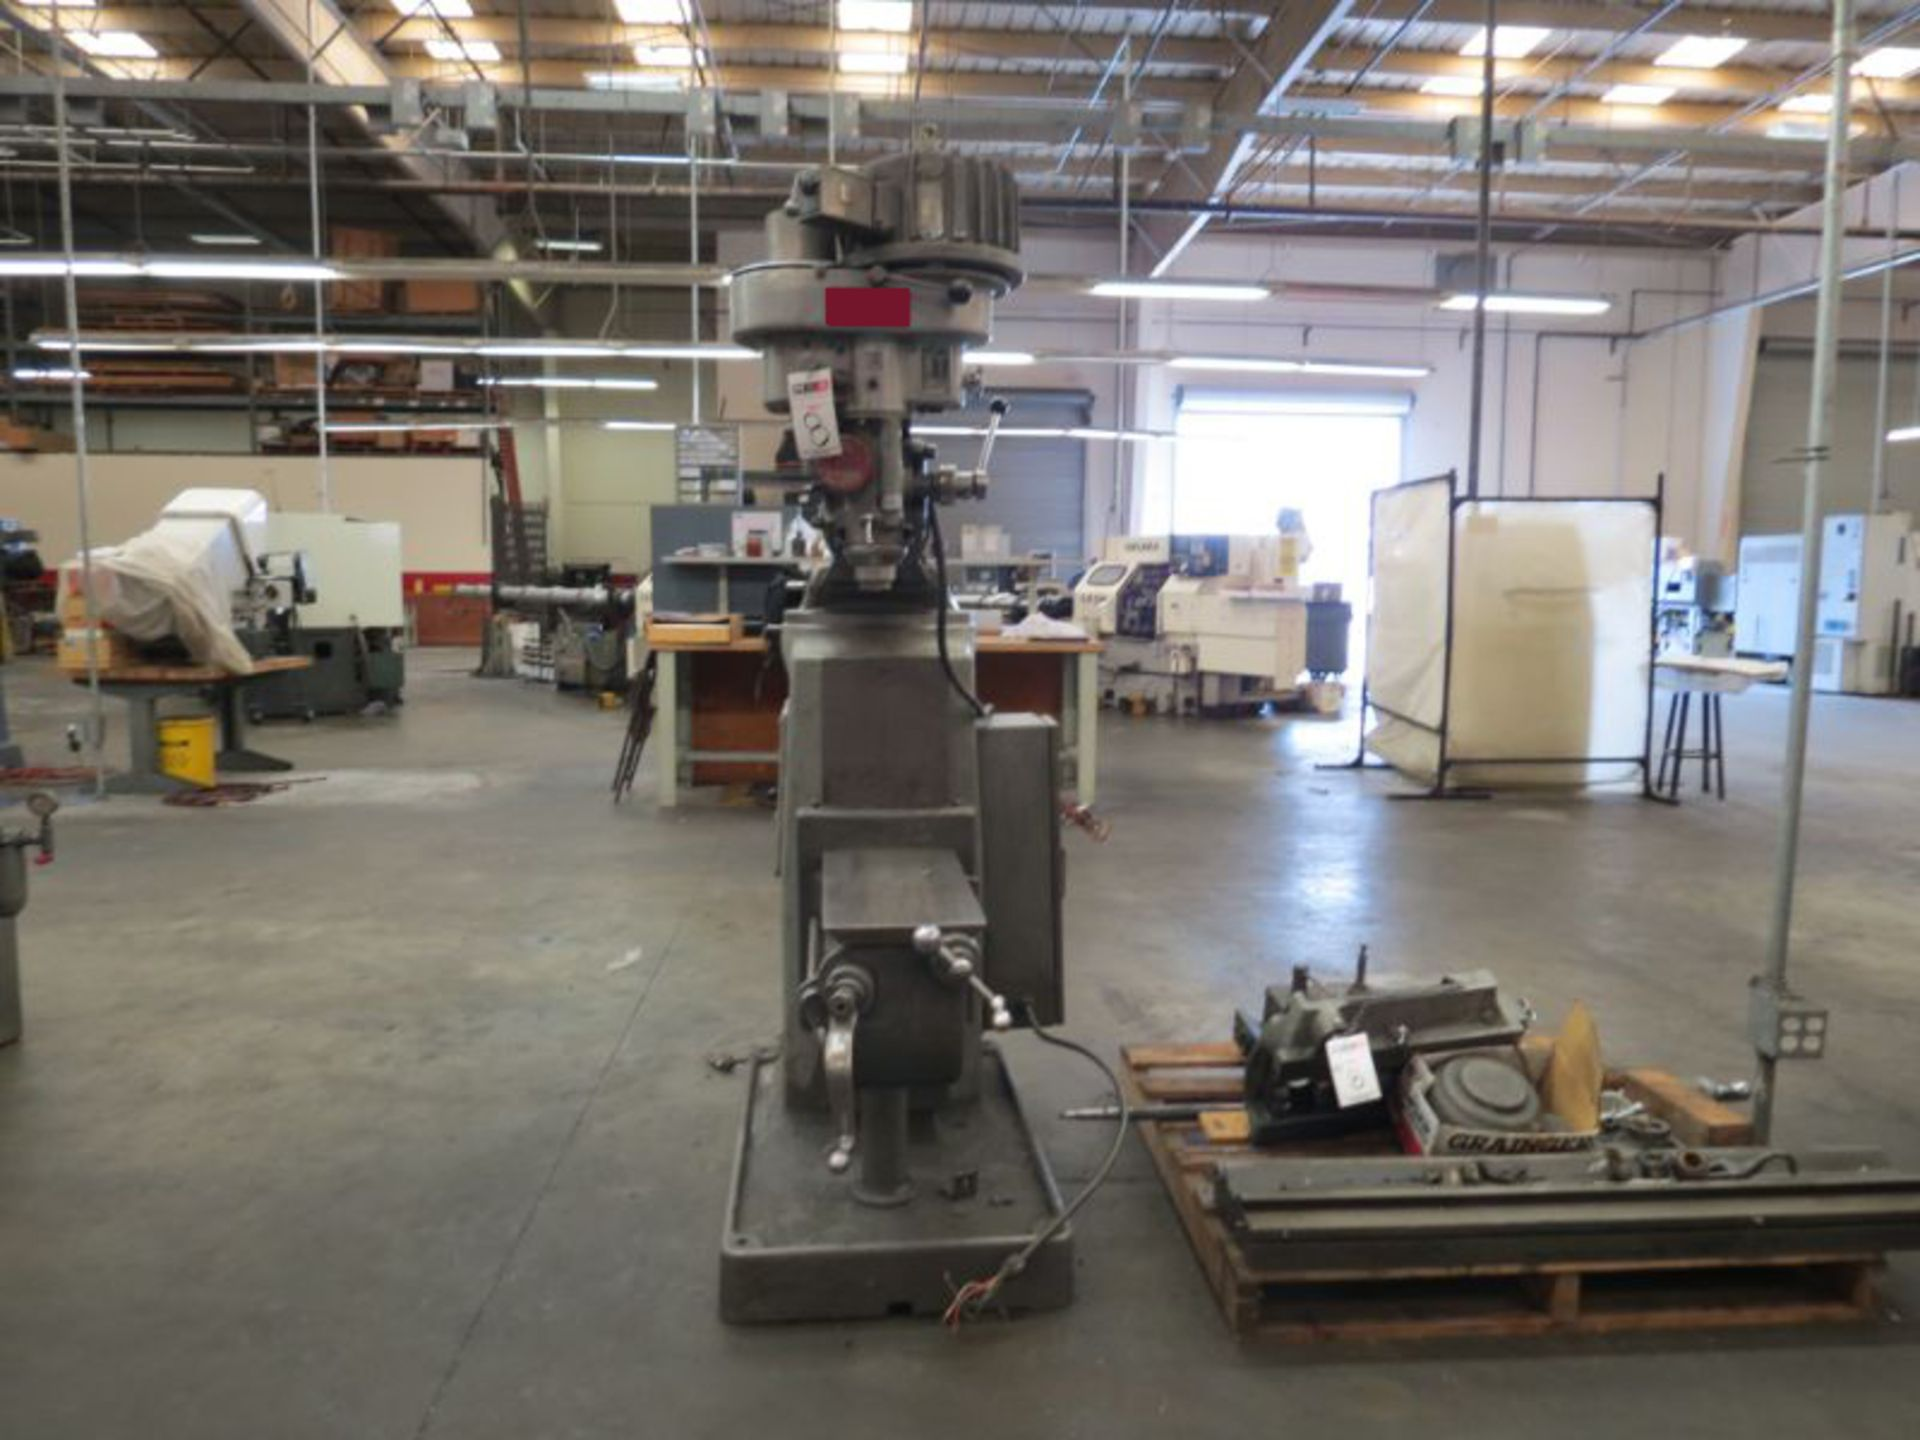 Lot 8 - Tree 2UVR Vertical Mill, 1.5HP, 1800RPM *Dismantled Table*